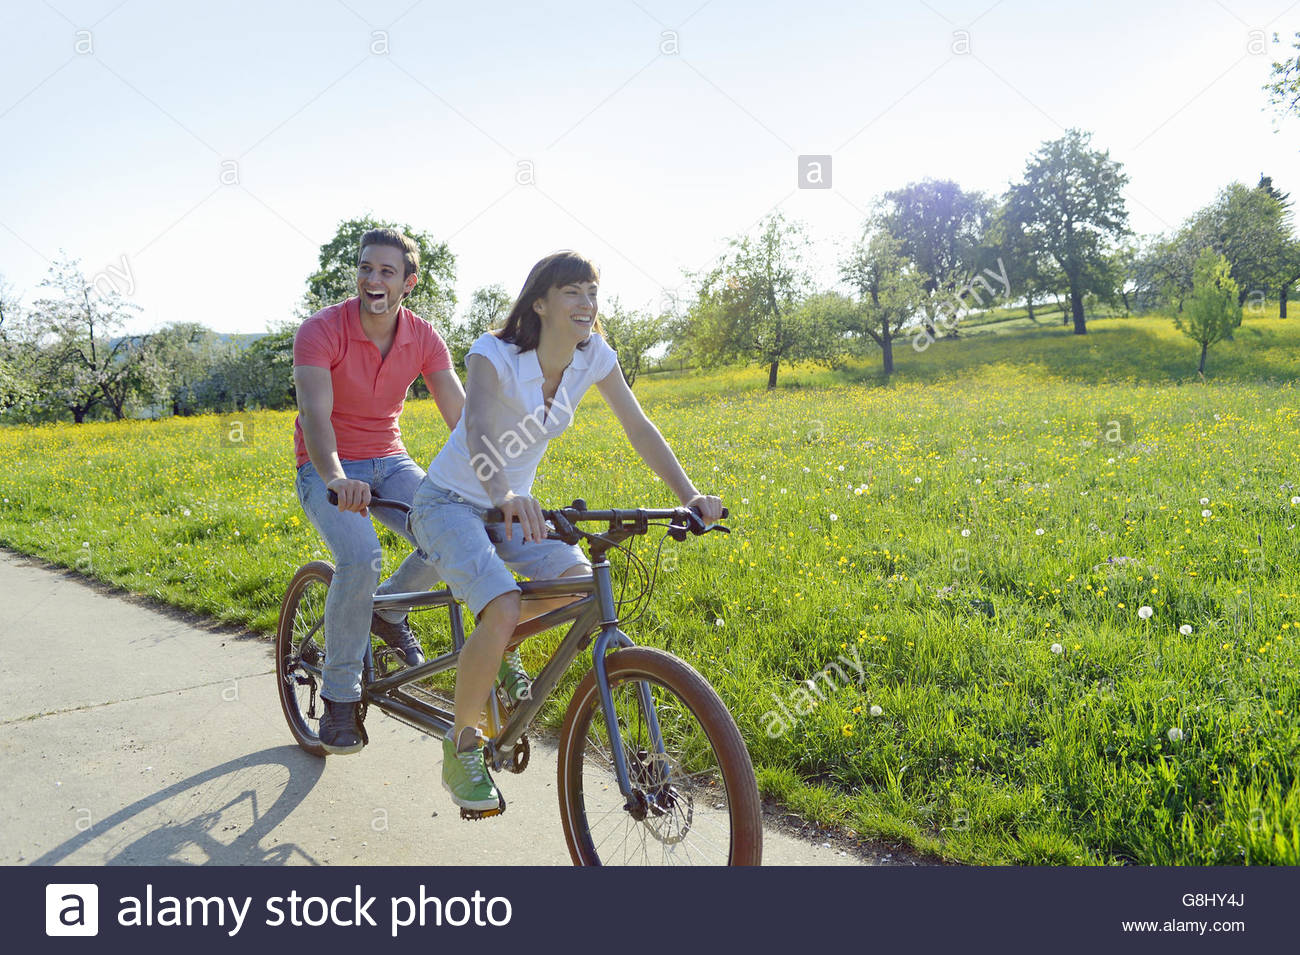 Young couple riding tandem through park - Stock Image